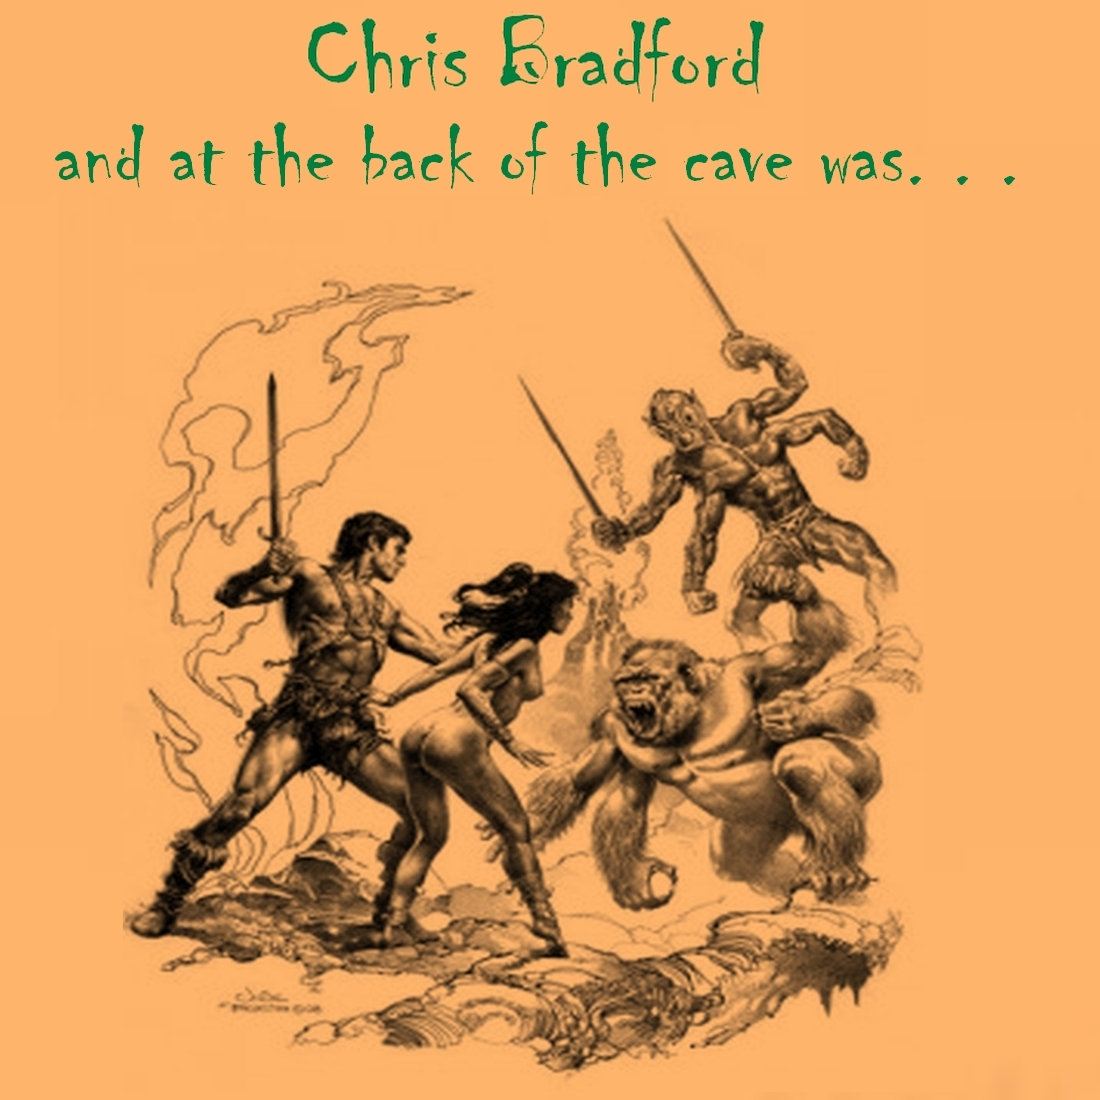 https://chrisbradford.bandcamp.com/album/and-at-the-back-of-the-cave-was